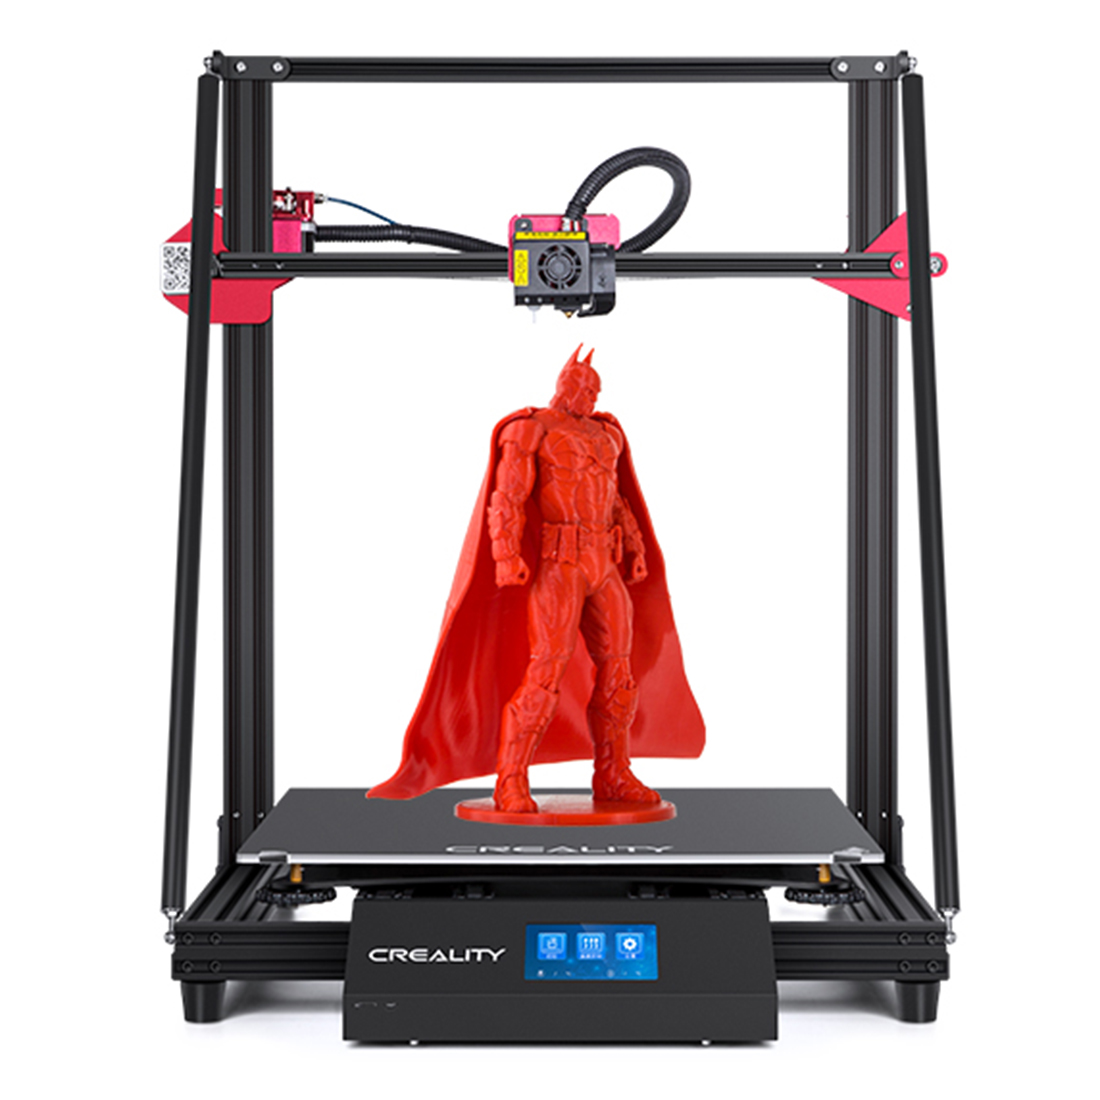 Creality3D CR-10 MAX 3D Printer with Printing Size of 450x450x470mm - AU Plug image